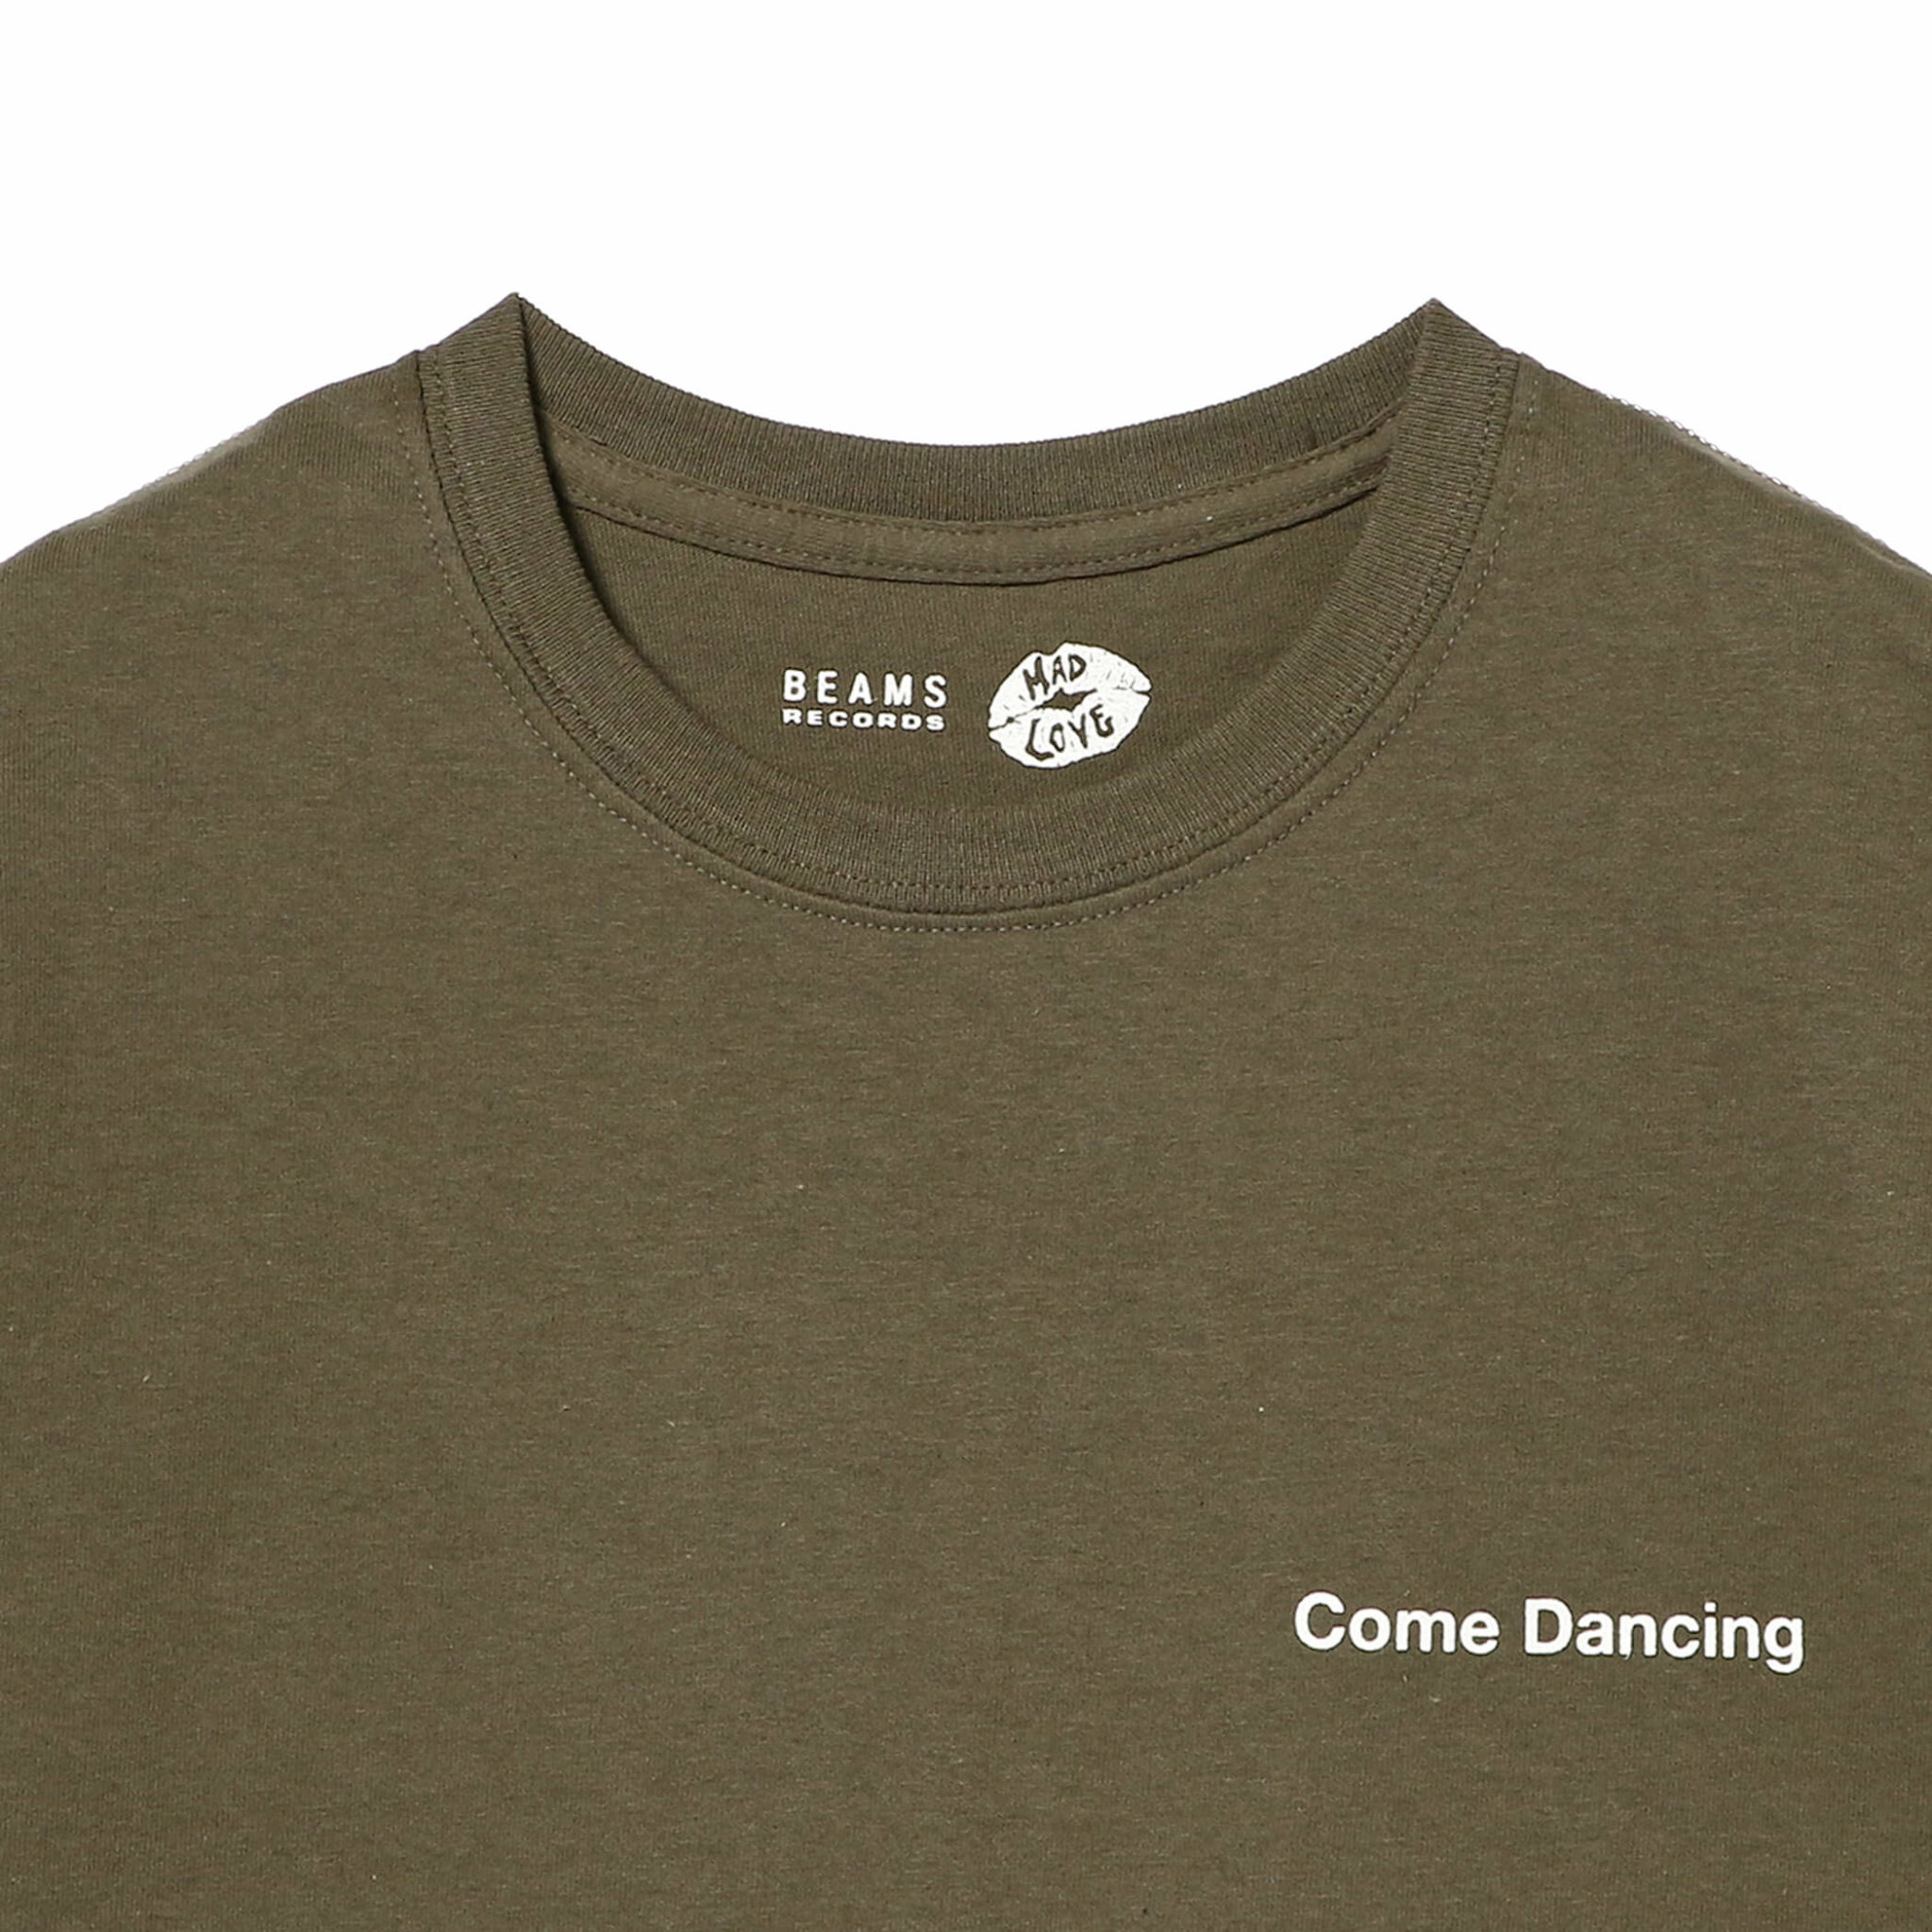 COME DANCING Short Sleeve T-shirt